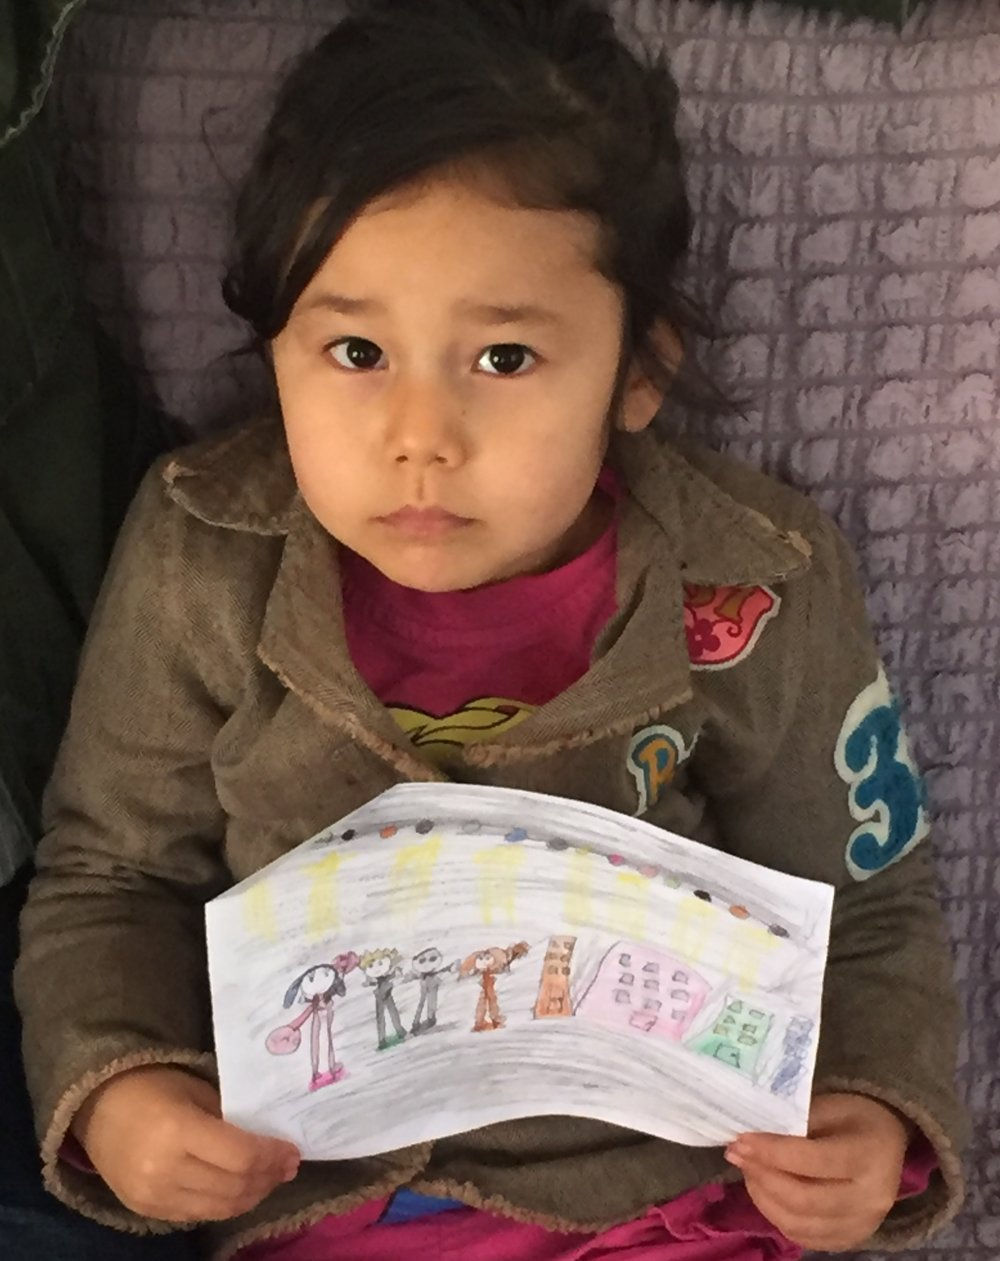 Access to education is another challenge. While Turkey provides access to schools, the cultural and language barriers make learning difficult and often lead to refugees dropping out of school. Pictured here, a 6-year-old Afghan refugee in Aksaray shows RI her artwork.